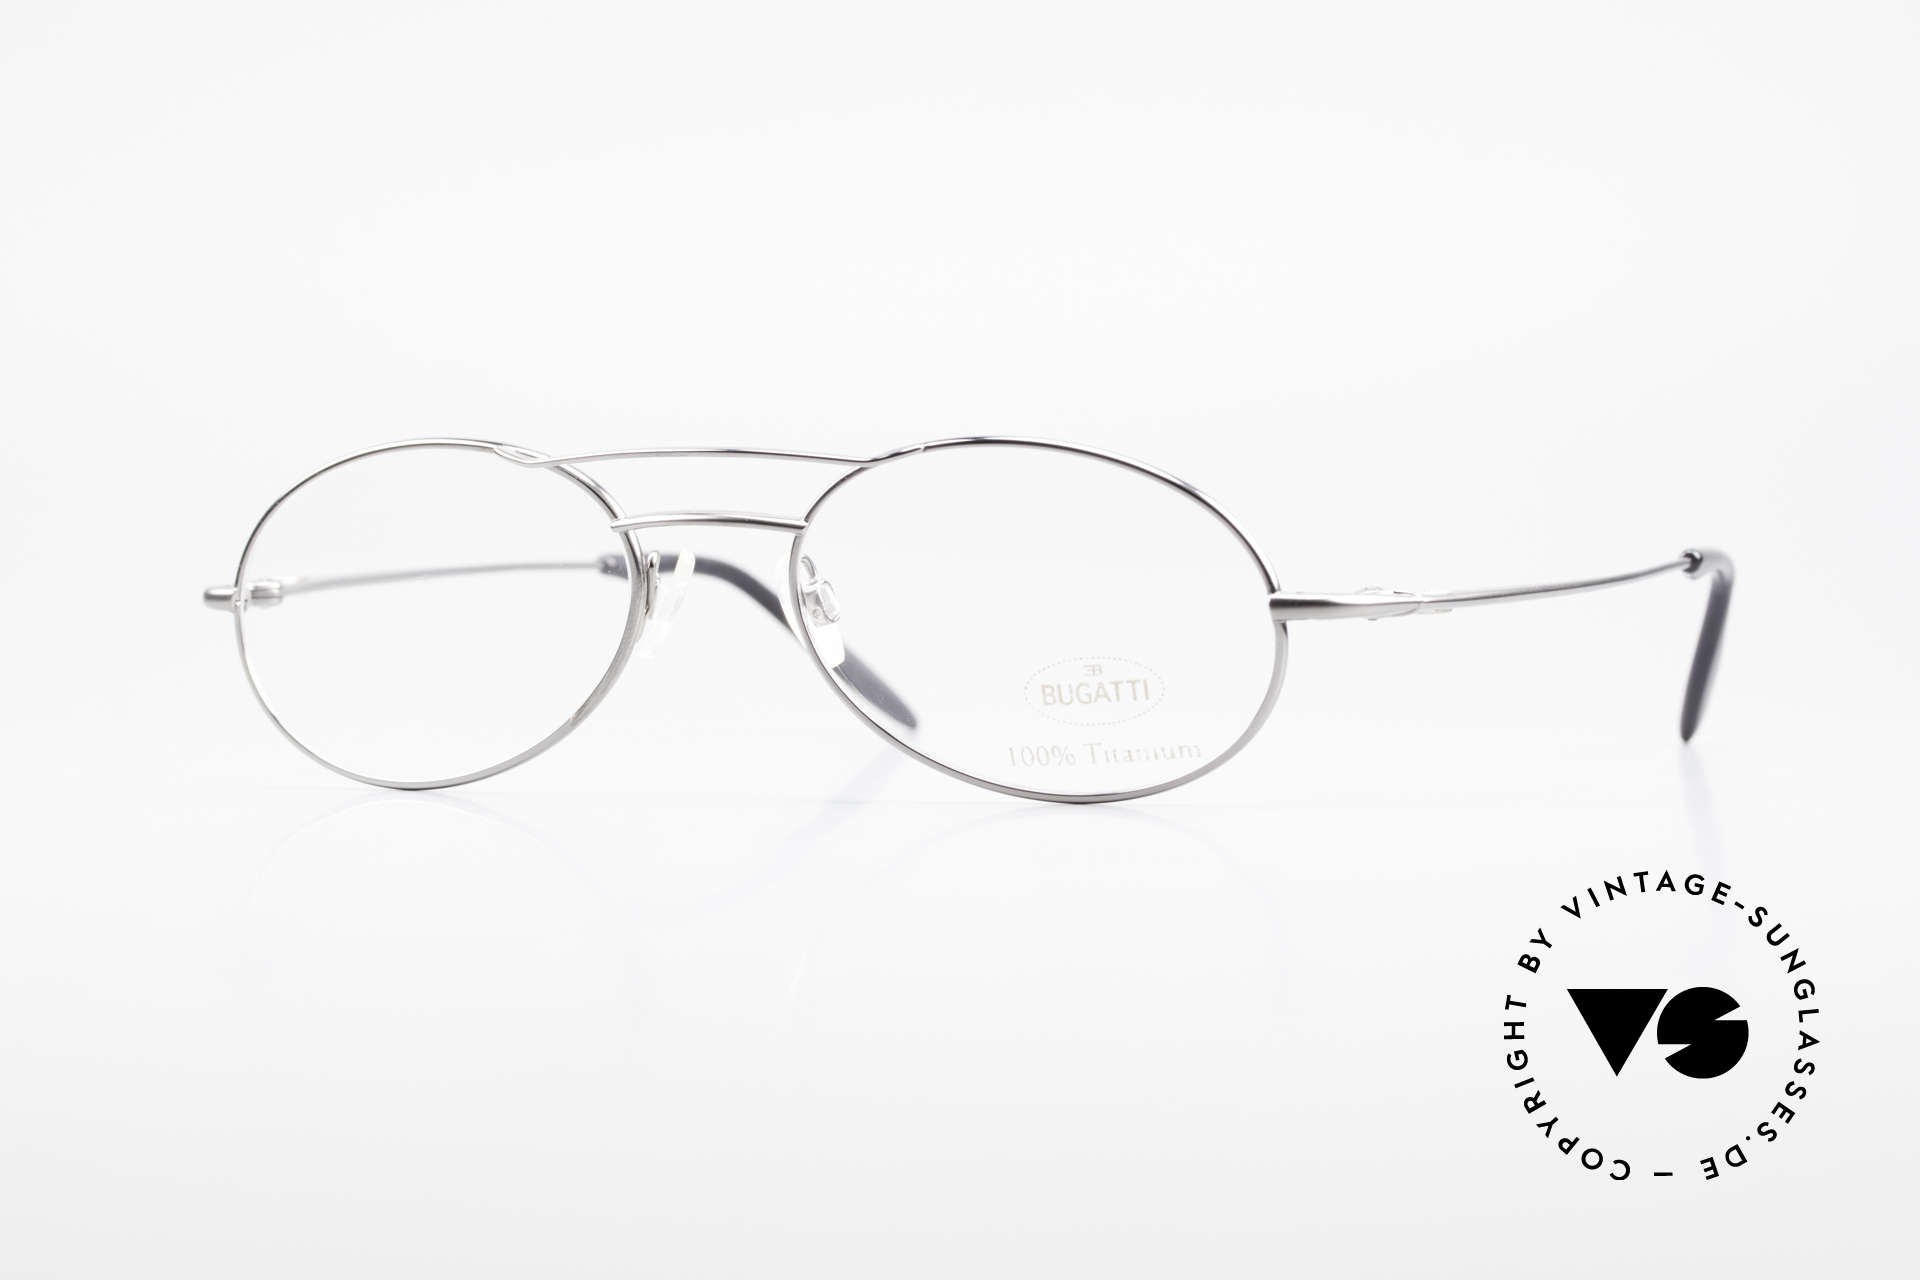 Bugatti 18861 Men's Titanium Eyeglasses, 100% Titanium vintage BUGATTI glasses from 1998, Made for Men